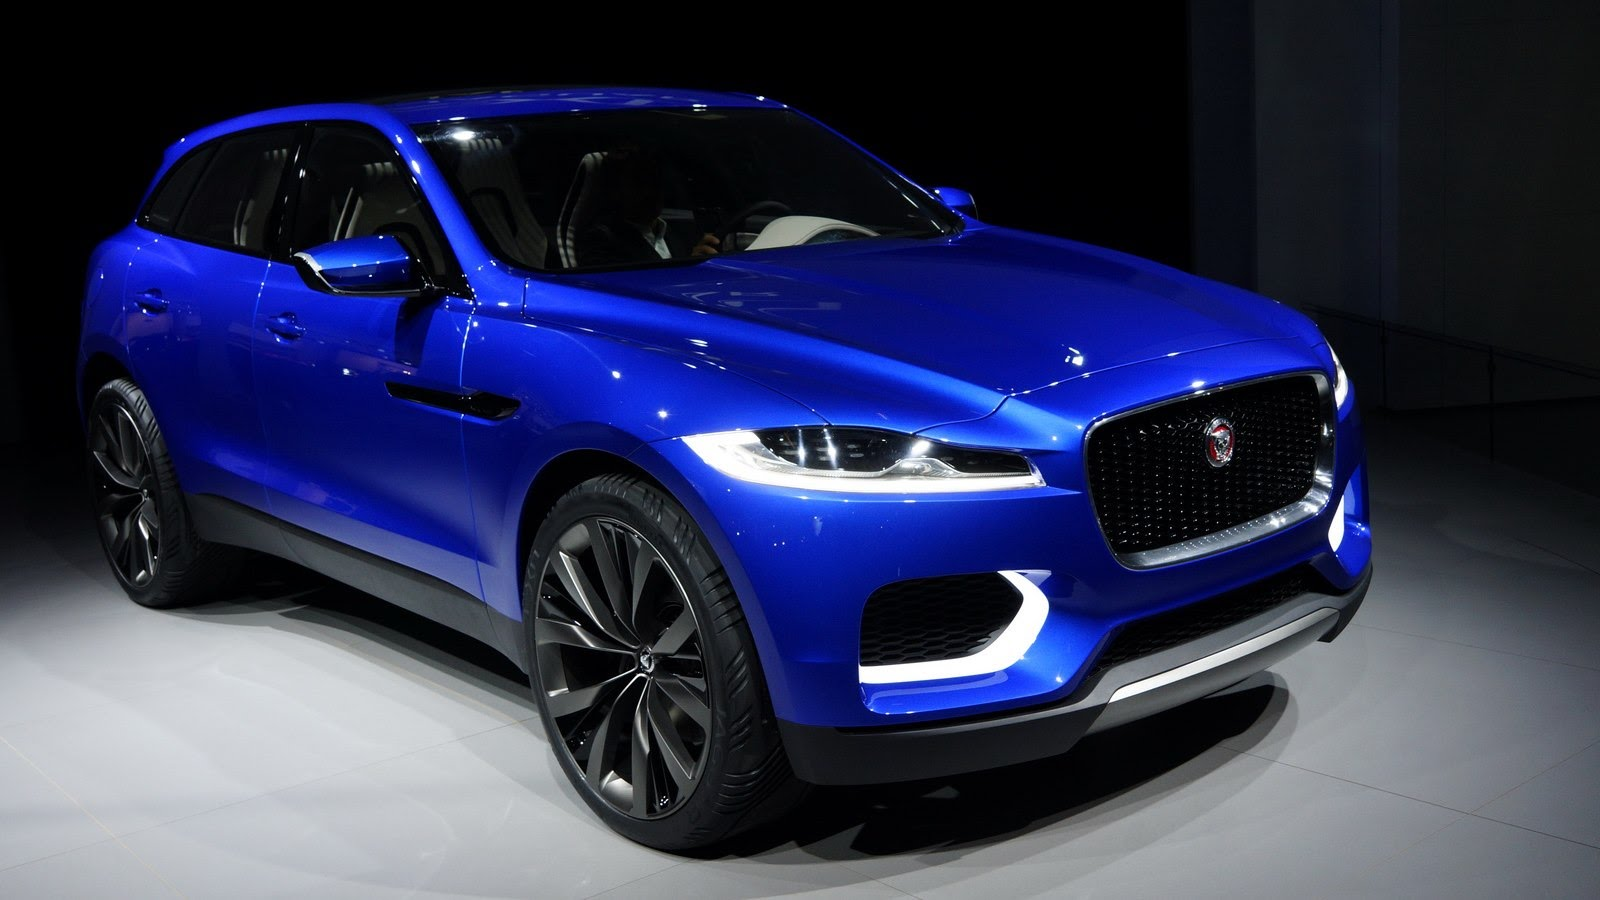 2017 jaguar f-pace suv 50 hd wallpapers - all latest new & old car